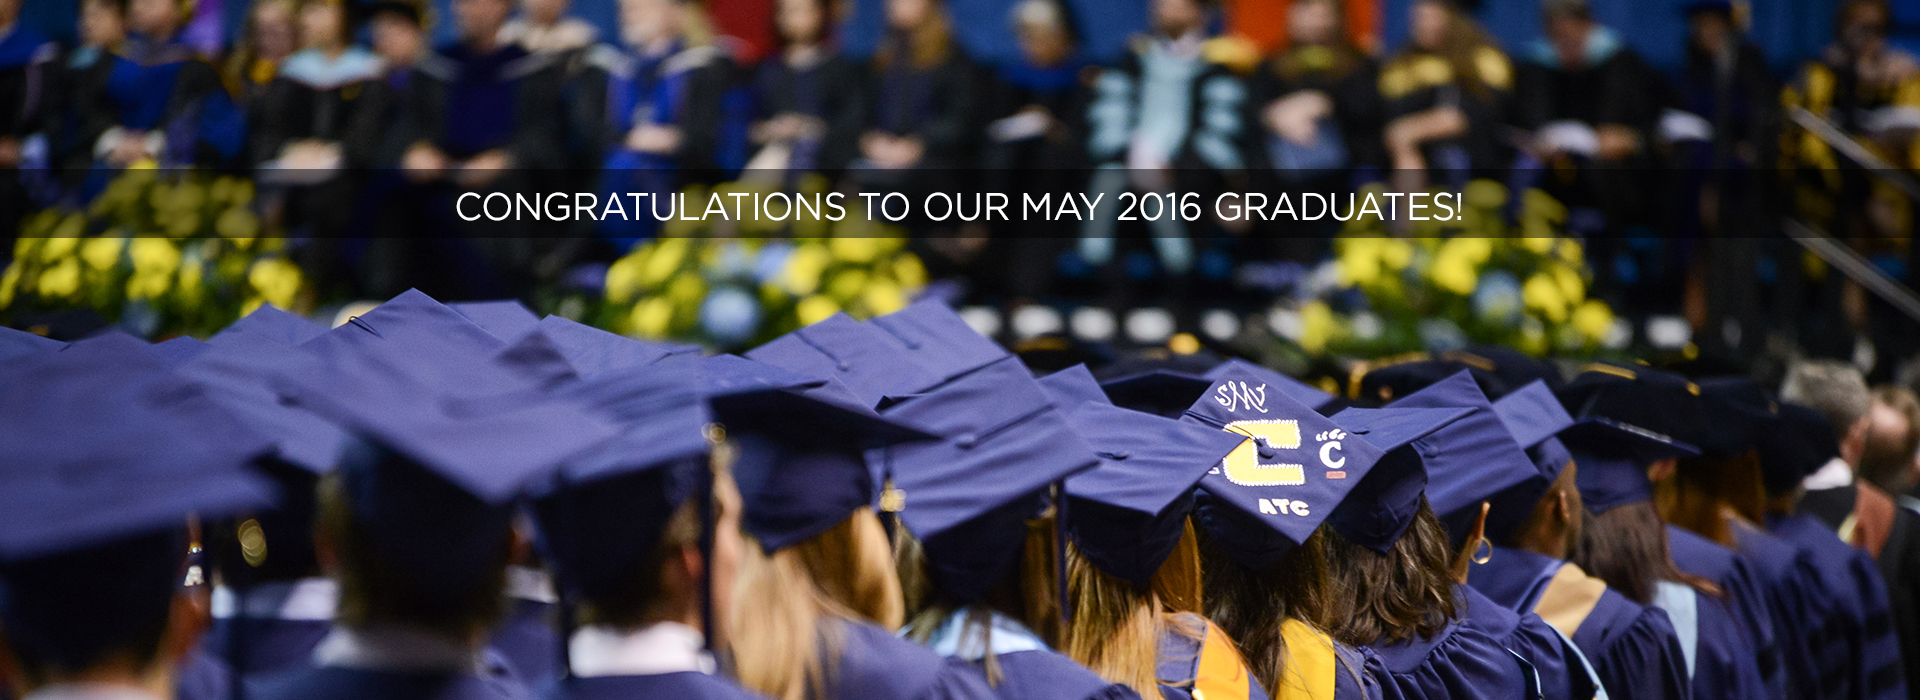 """""""Congratulations to our May 2016 graduates!"""""""